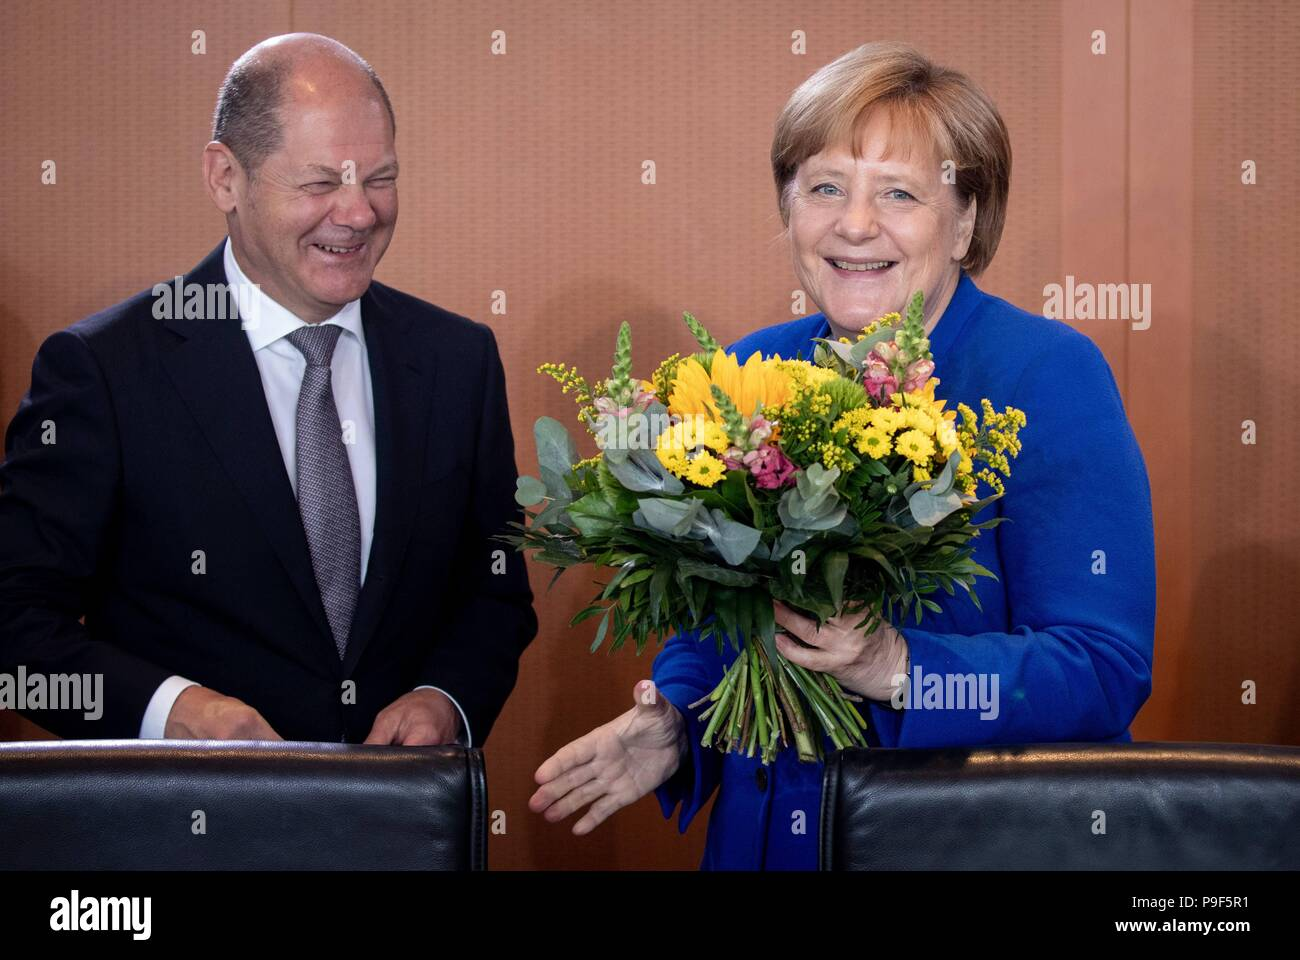 Berlin, Germany. 18th July, 2018. German chancellor Angela Merkel (CDU) receives a belated birthday bouqet from Olaf Scholz (SPD, L), federal minister of finance at the start of the federal cabinet meeting at the chancellery. Credit: Kay Nietfeld/dpa/Alamy Live News - Stock Image